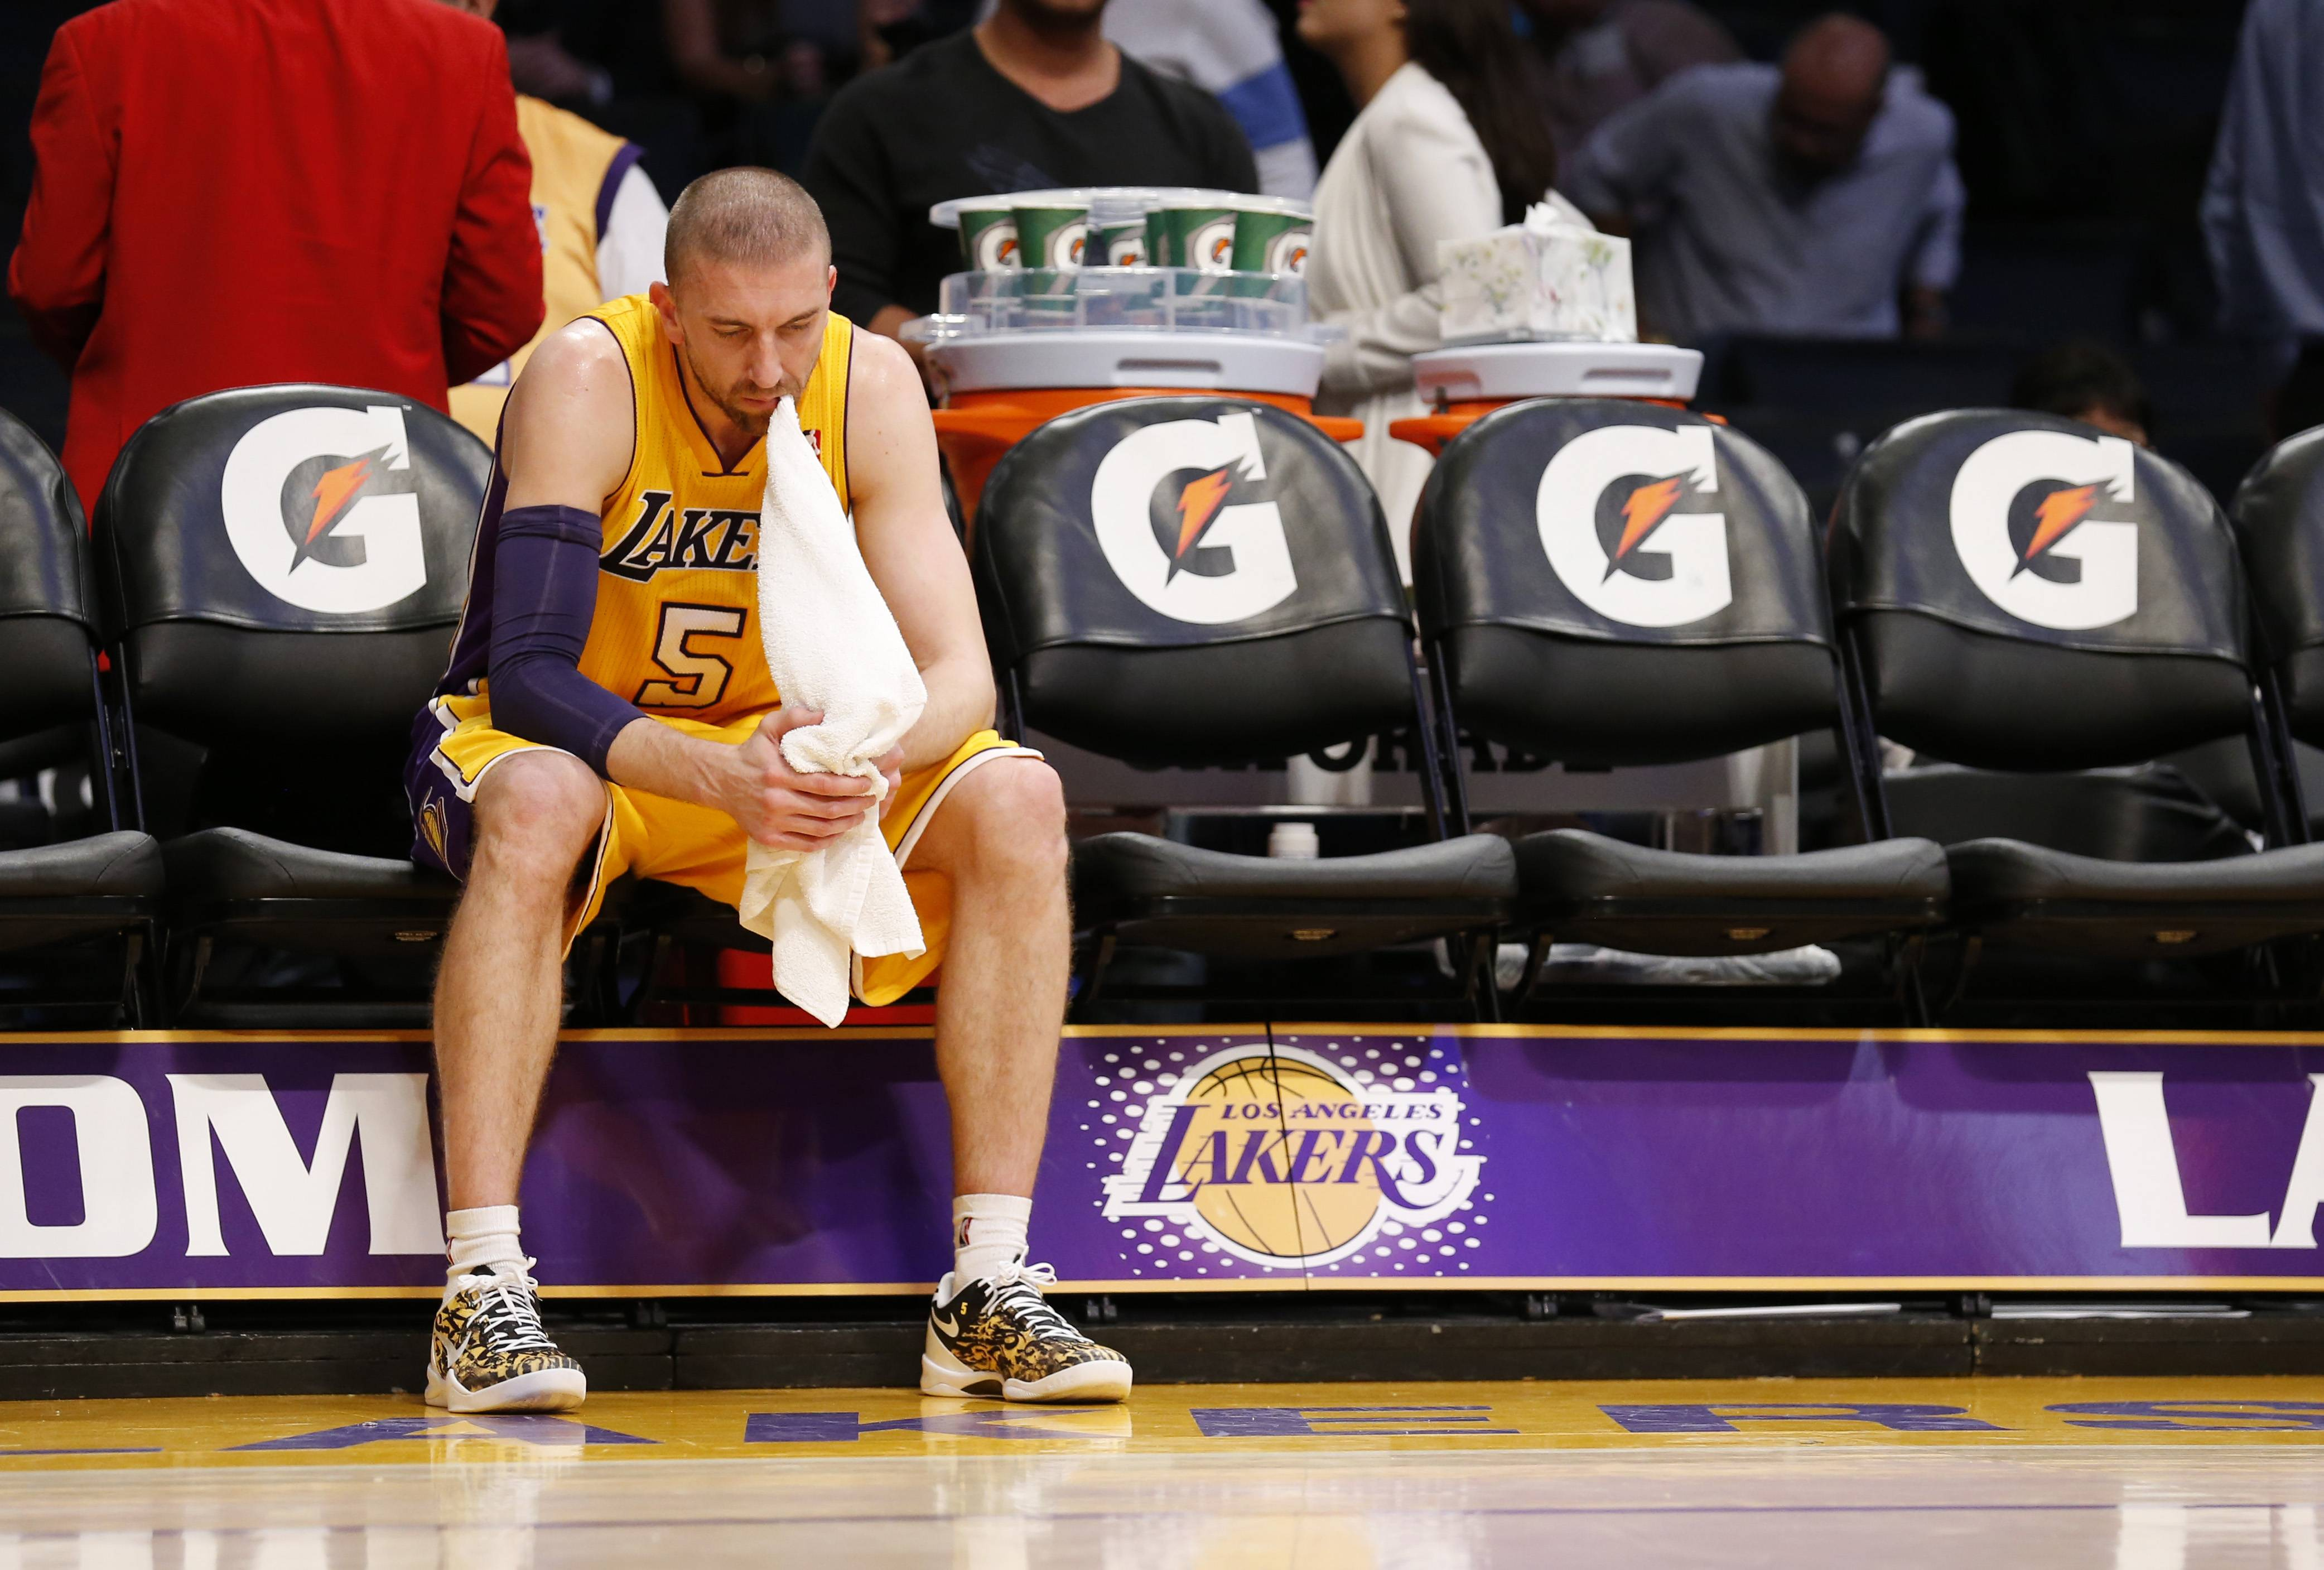 Los Angeles Lakers' player Steve Blake shows the pain of another loss as the Lakers continue to struggle.